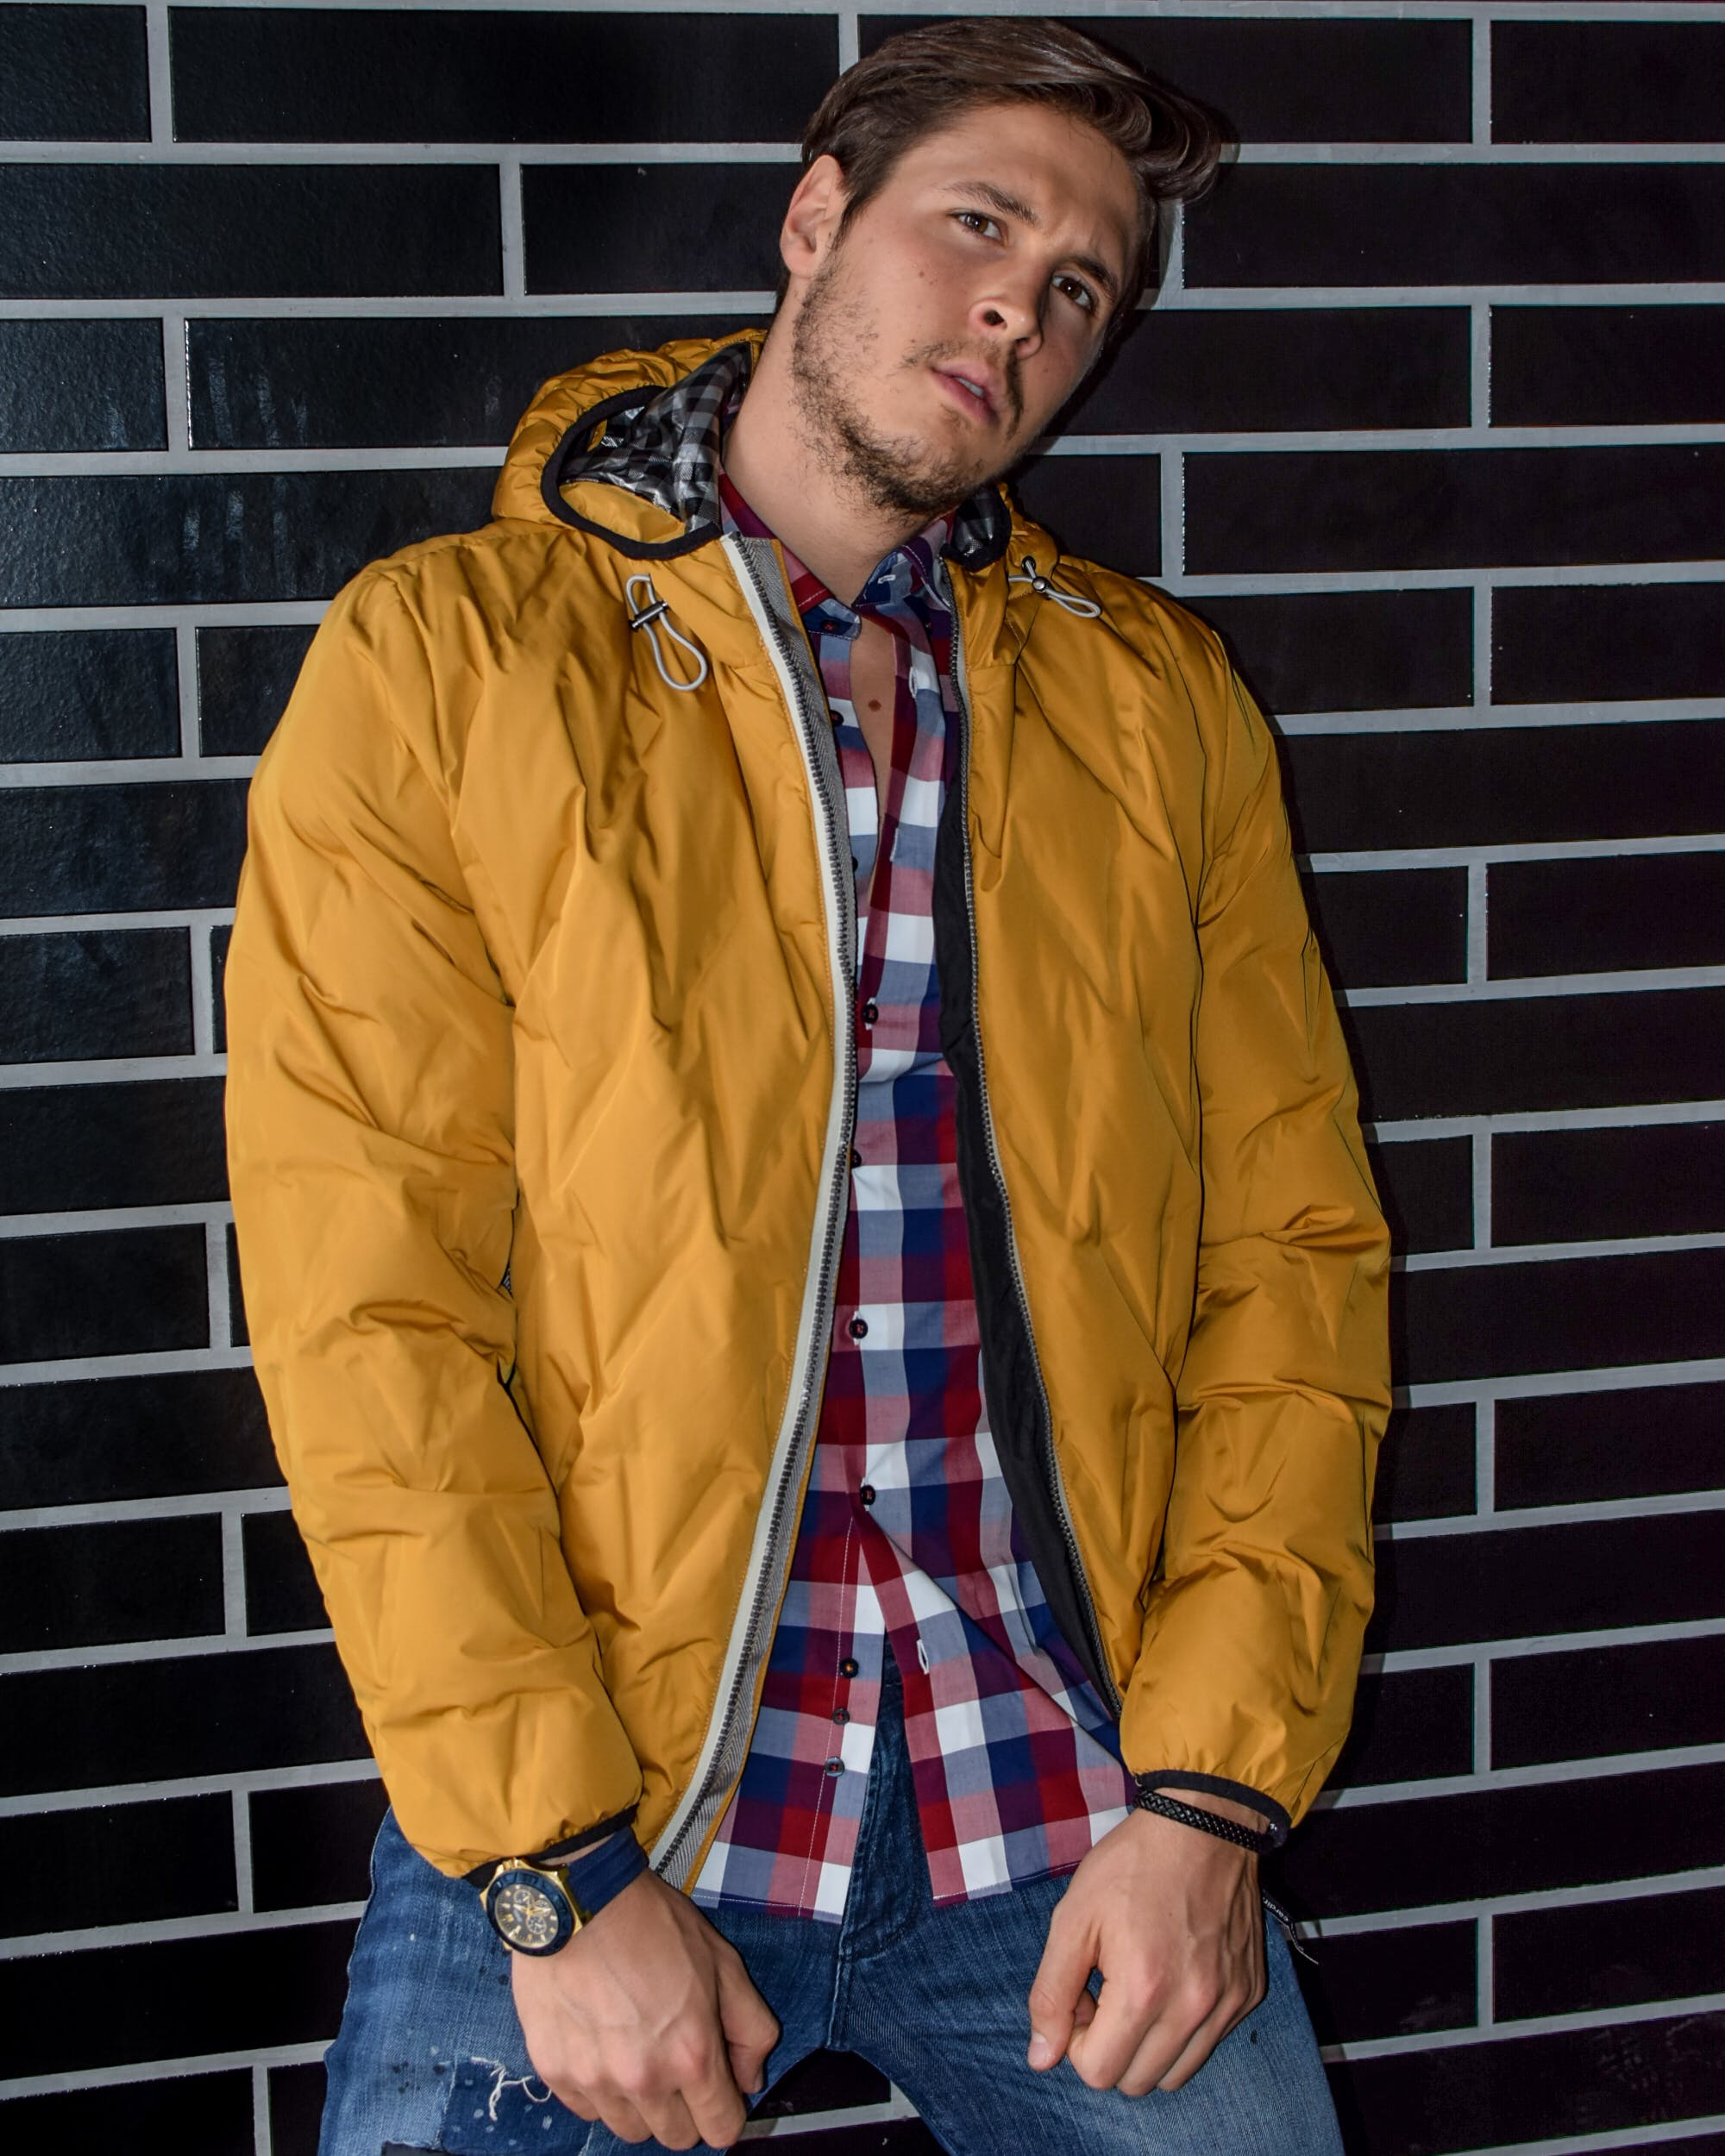 Man Wearing Yellow Zip-up Jacket Leaning on Brown Brick Wall